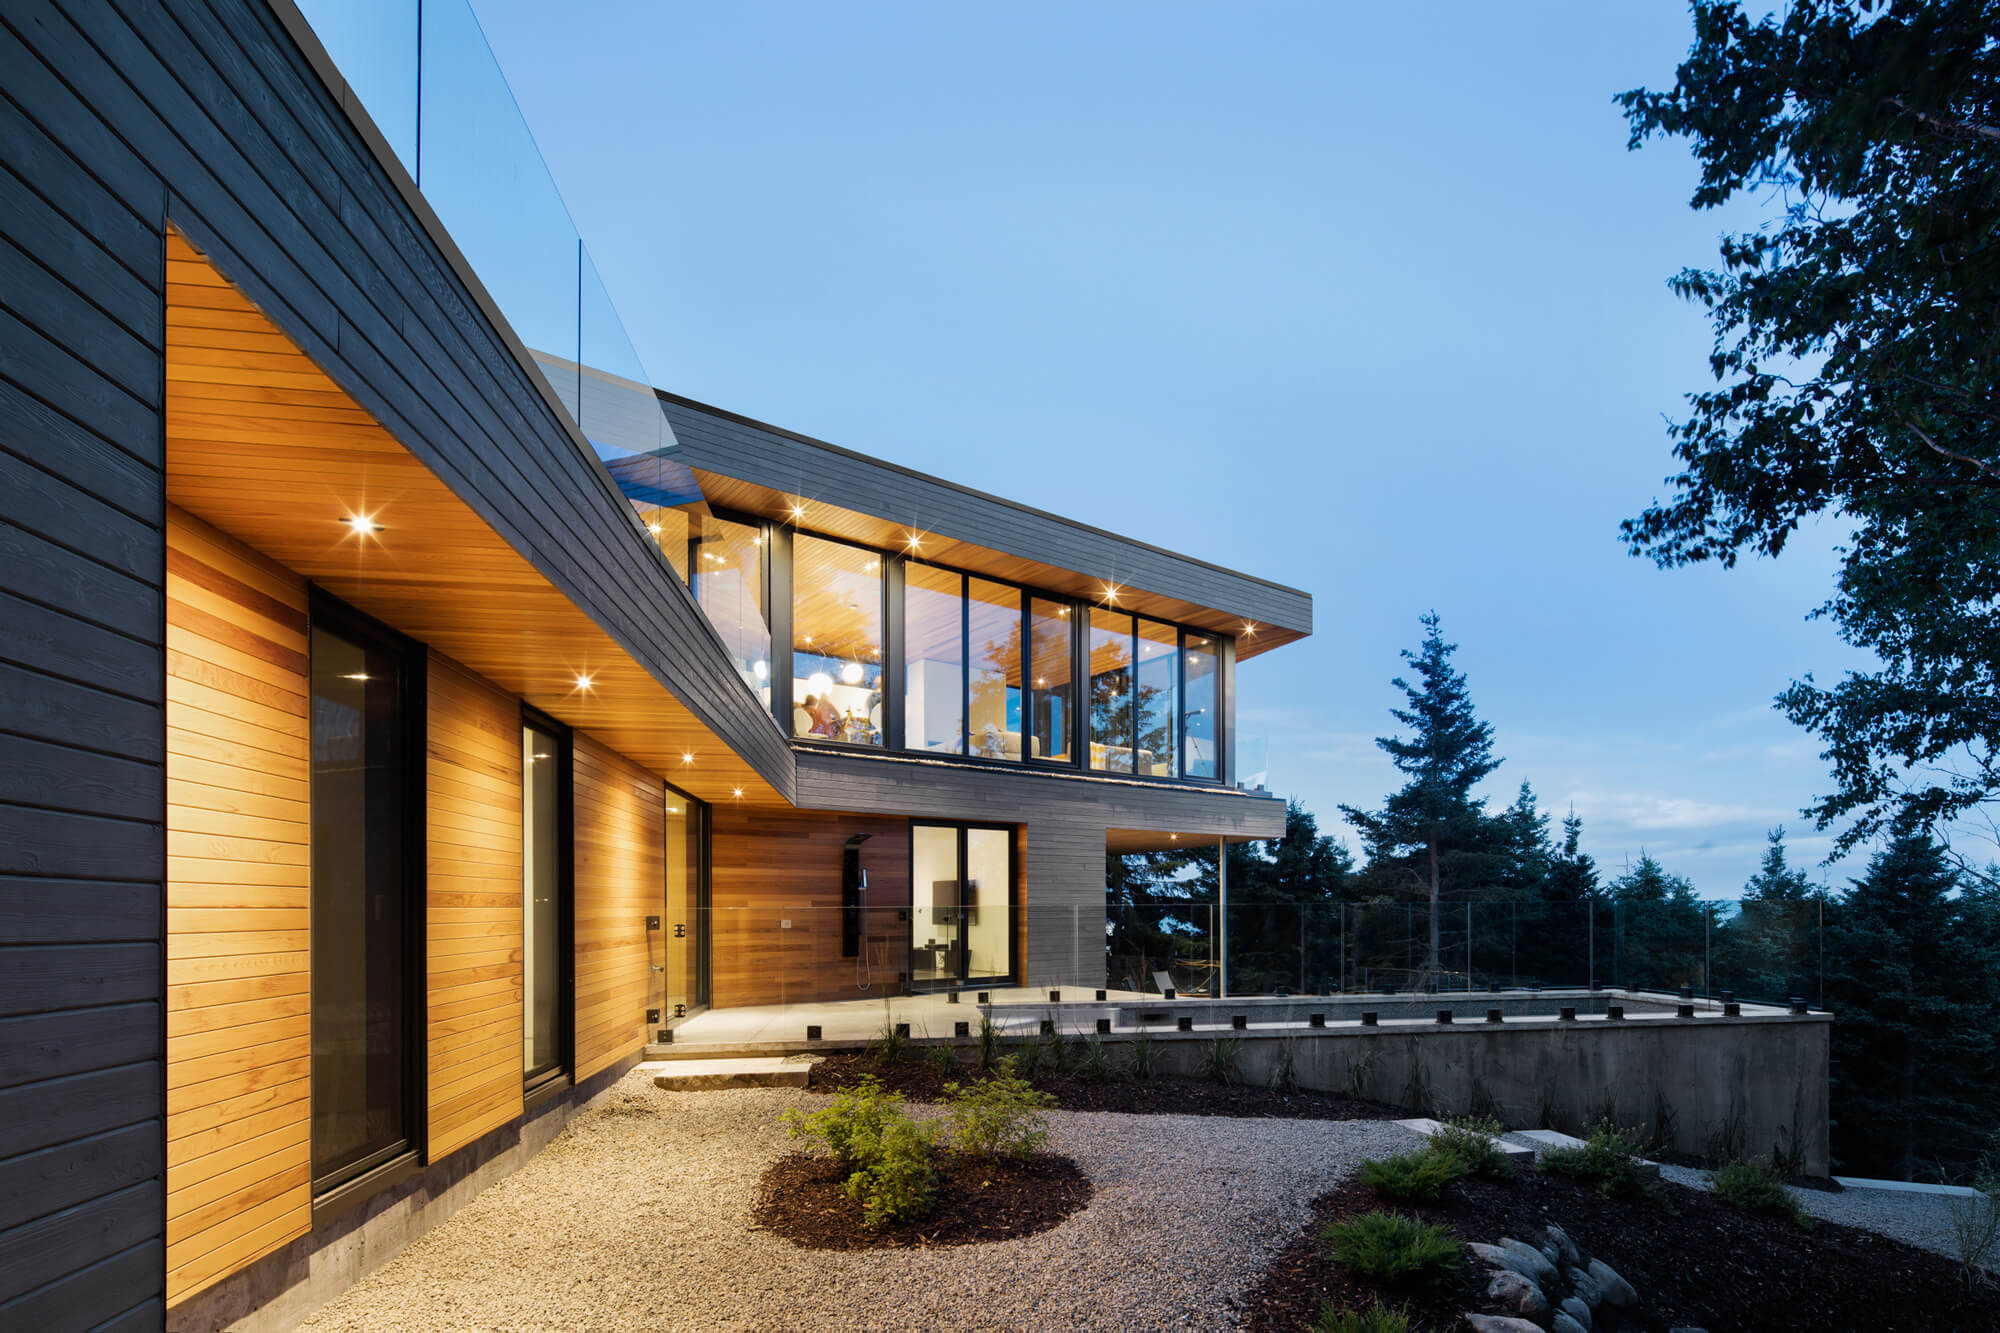 370_BOURGEOIS-LECHASSEUR-ARCHITECTES_RESIDENCE-ALTAIR_18